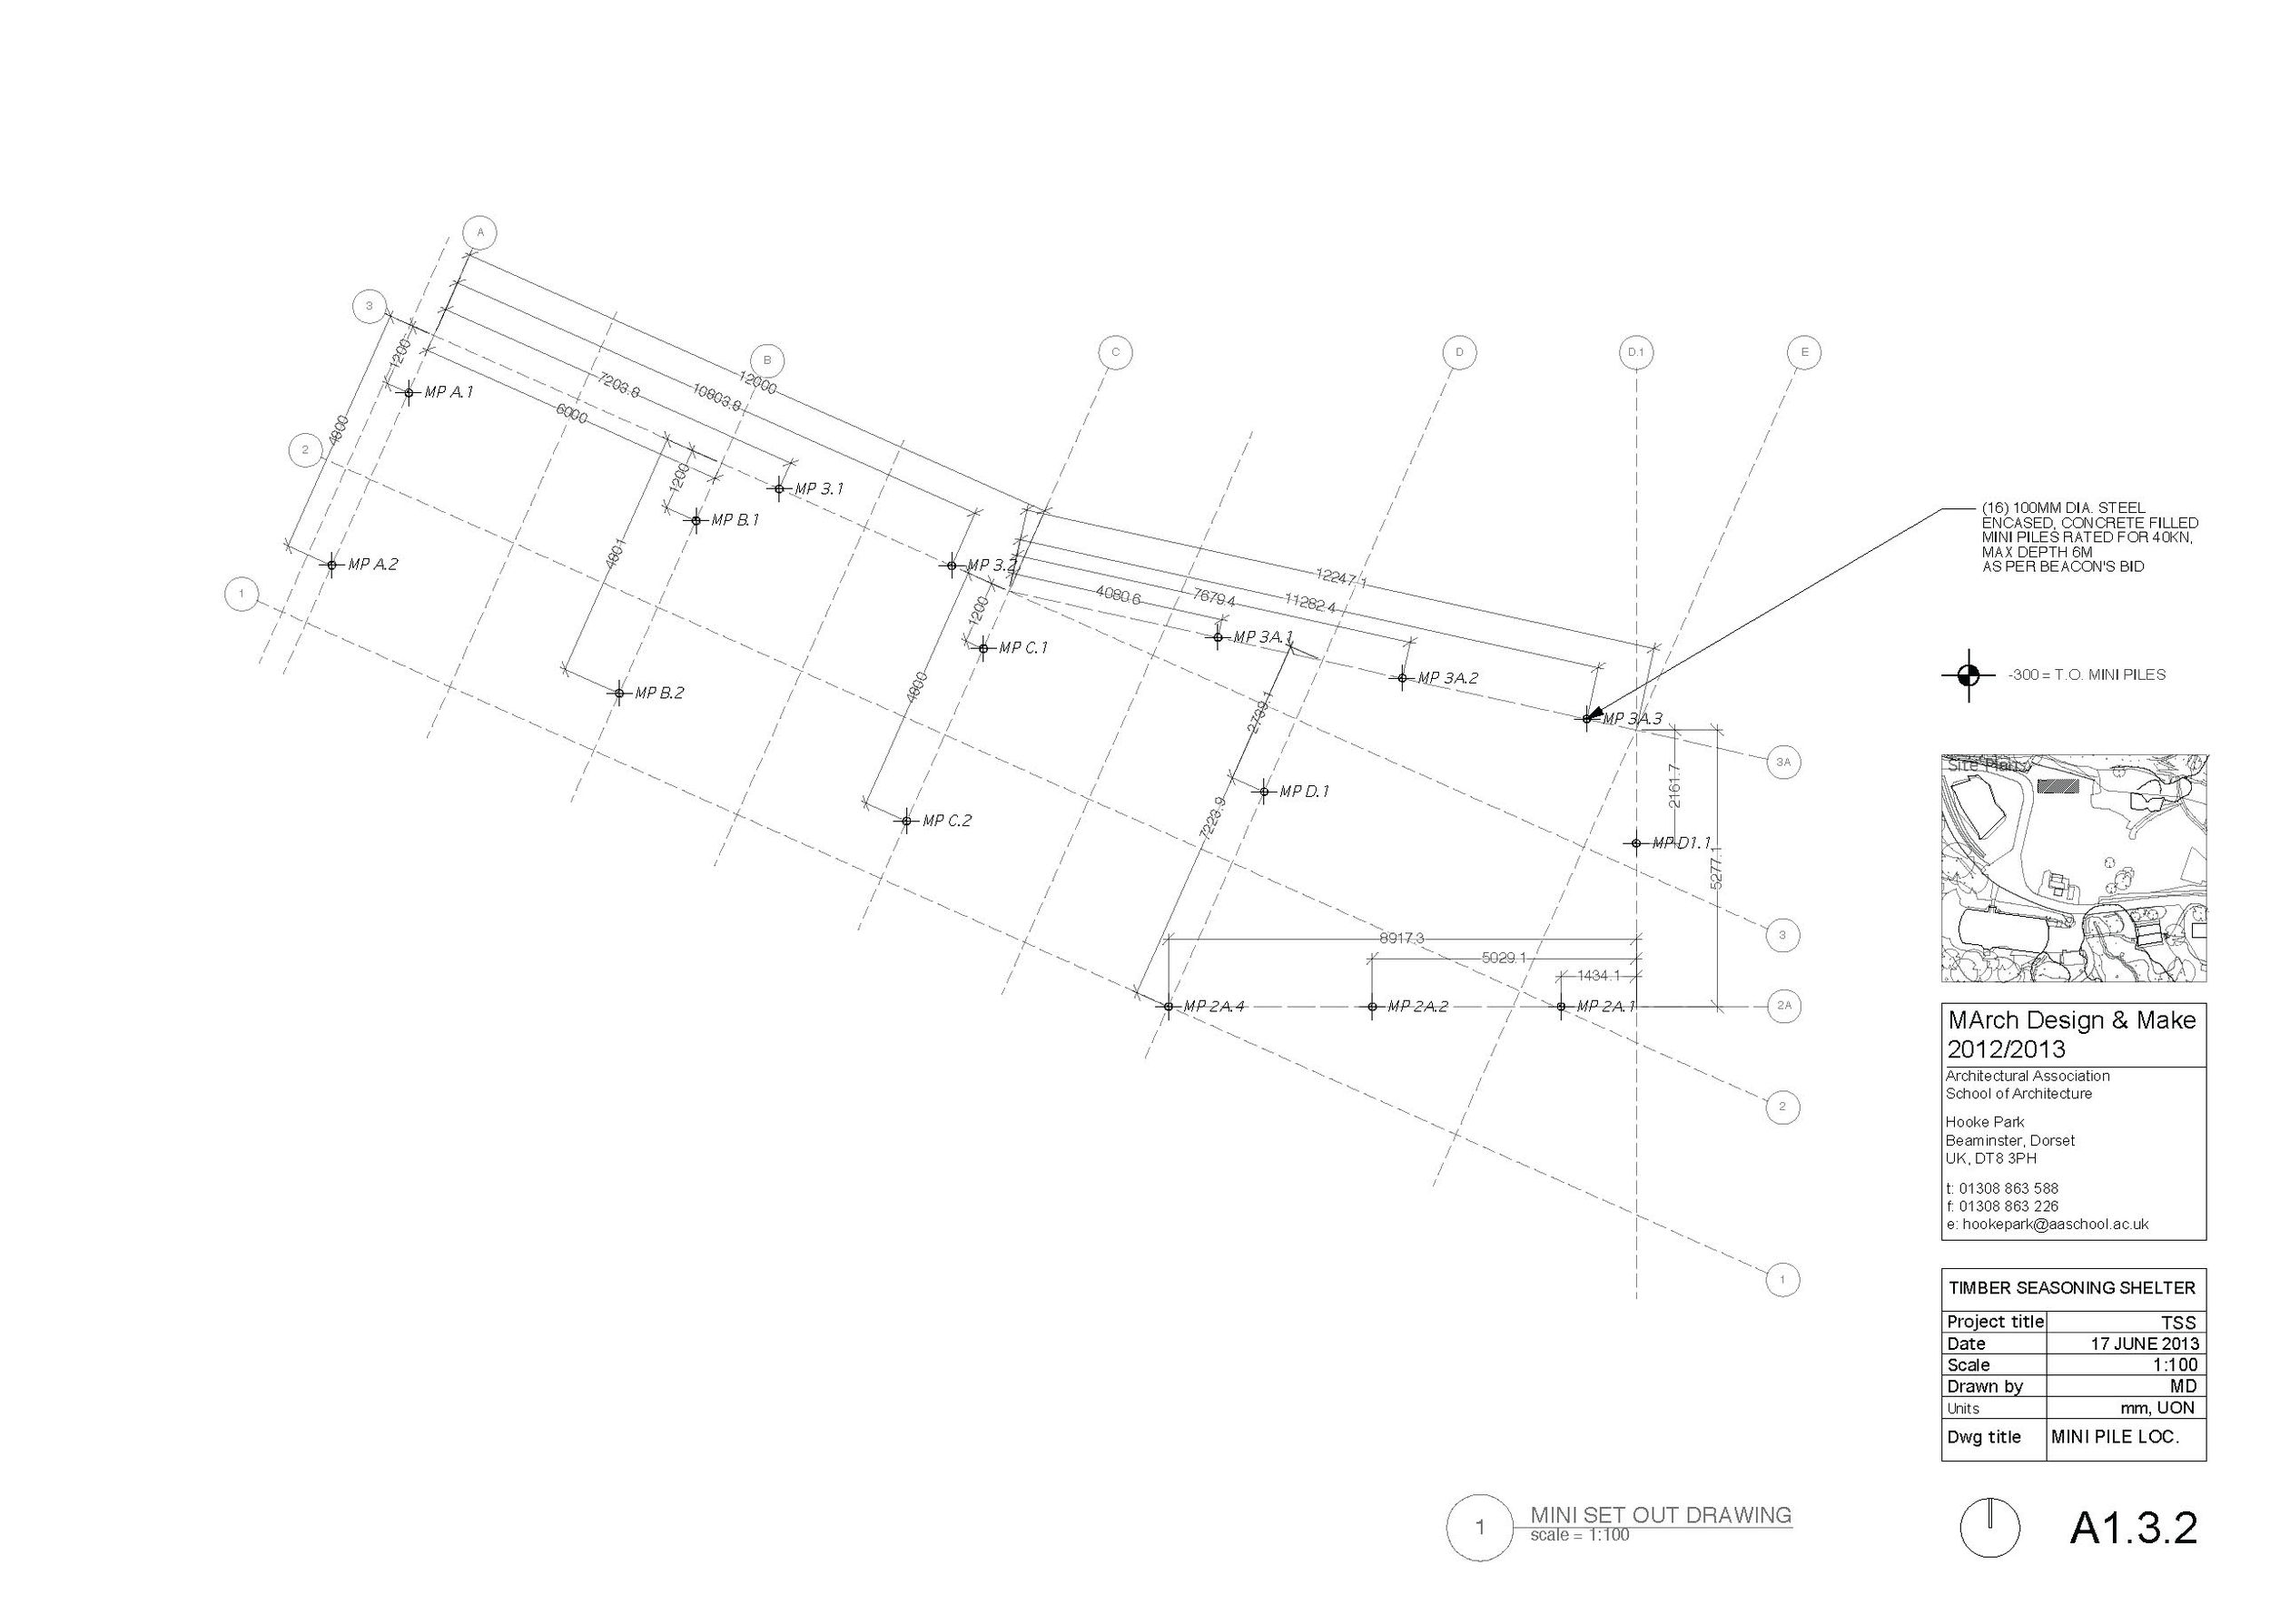 0619_13 TSS SETTING OUT DRAWINGS_Page_07.jpg